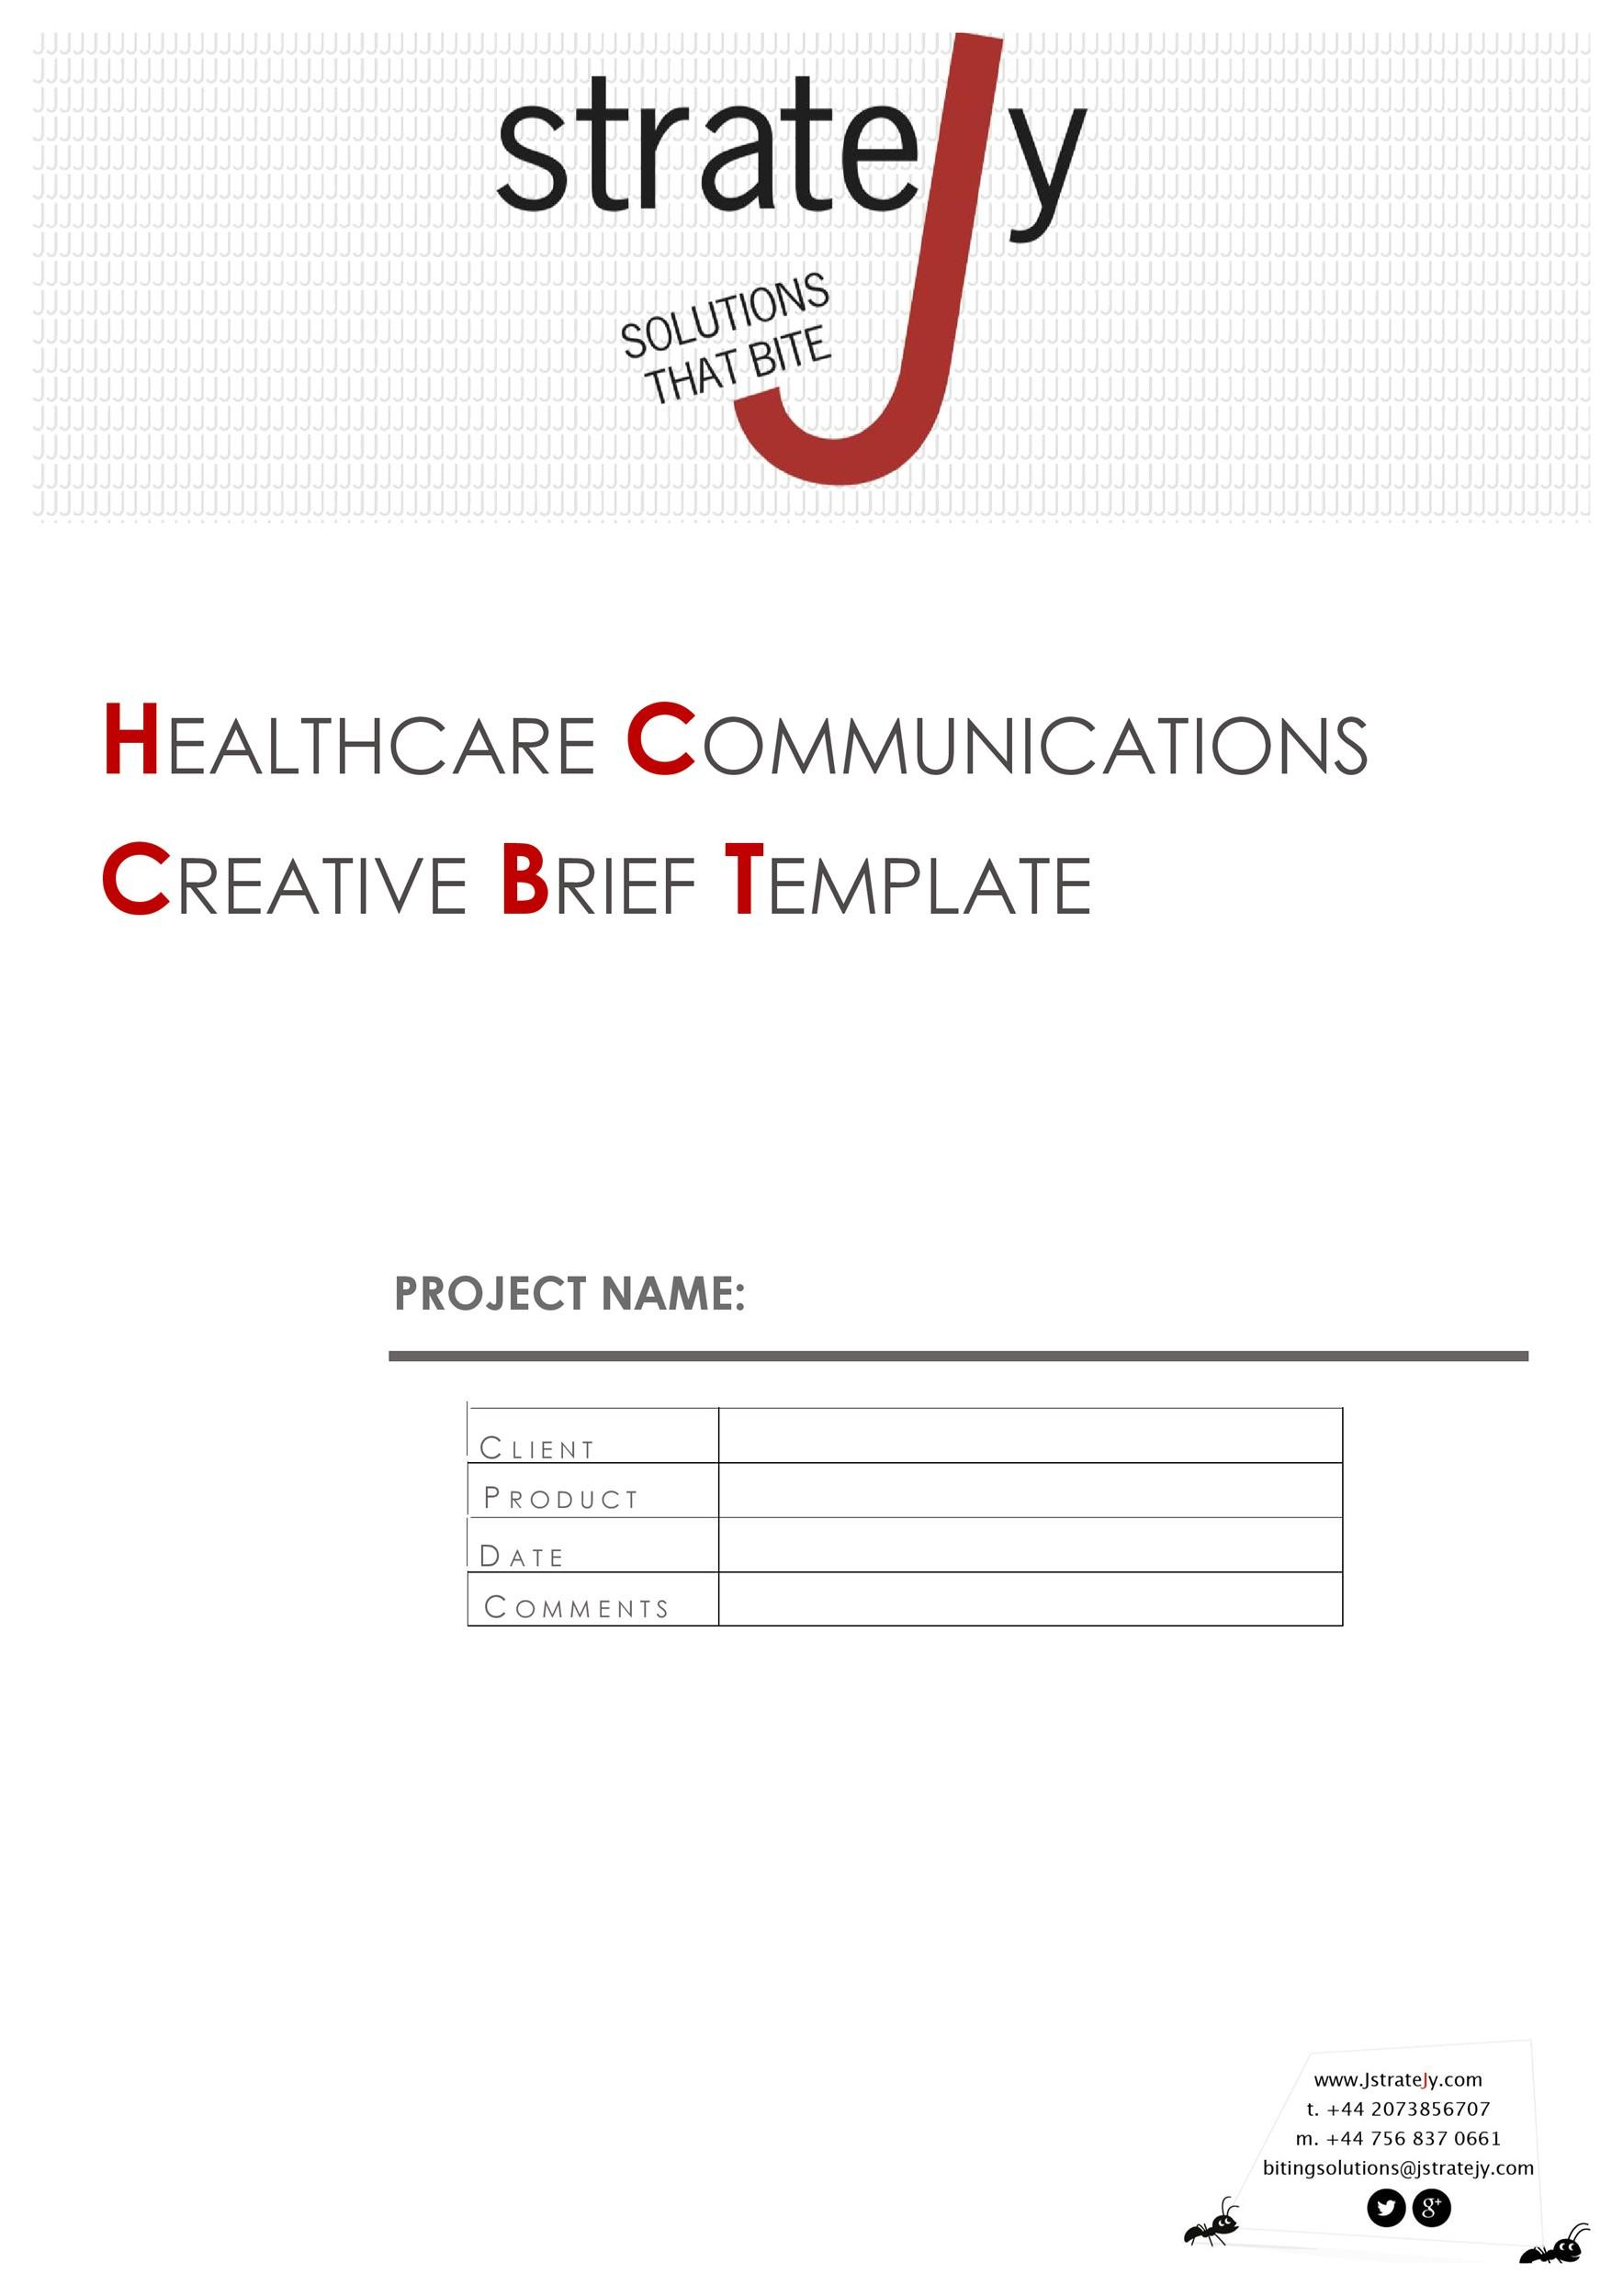 Free Creative Brief Template 24